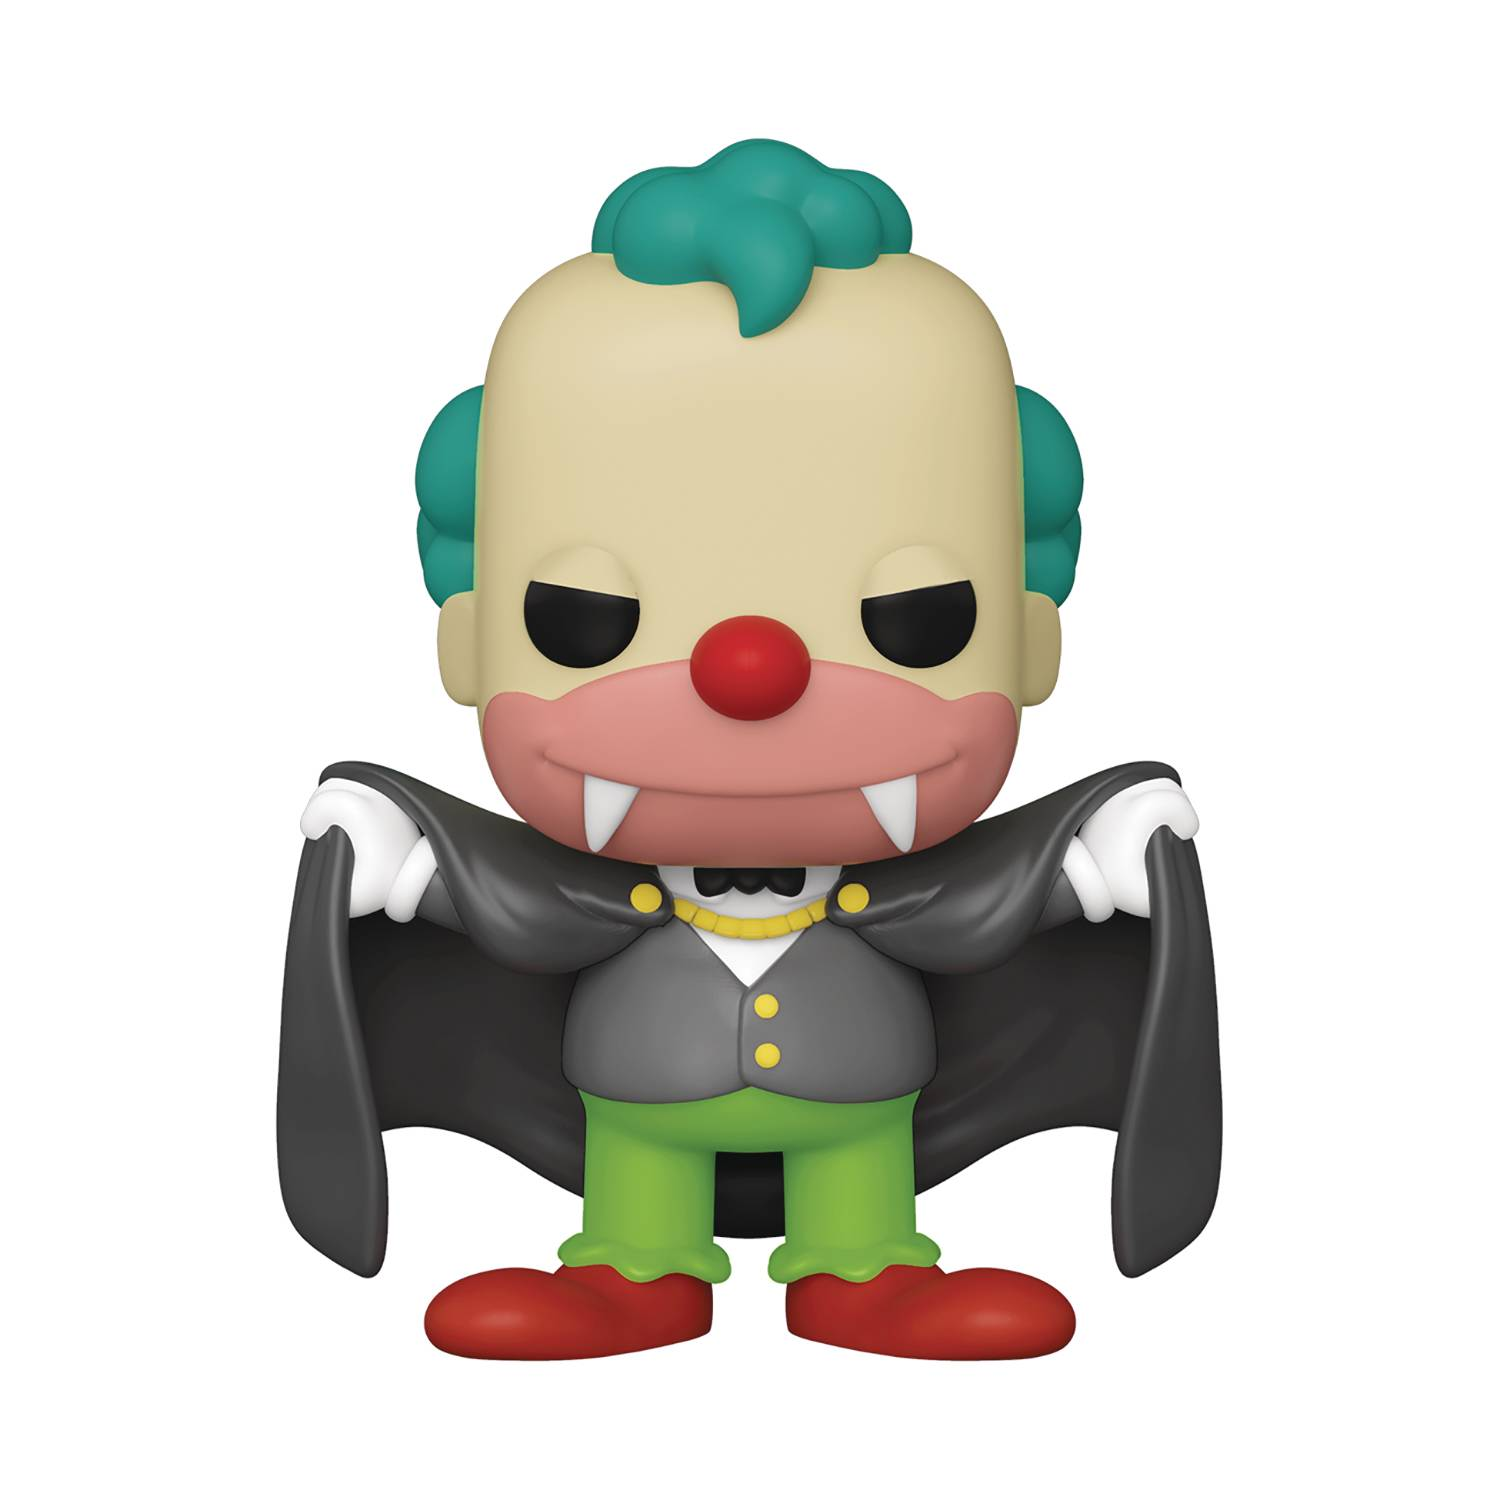 POP ANIMATION SIMPSONS VAMPIRE KRUSTY VIN FIG